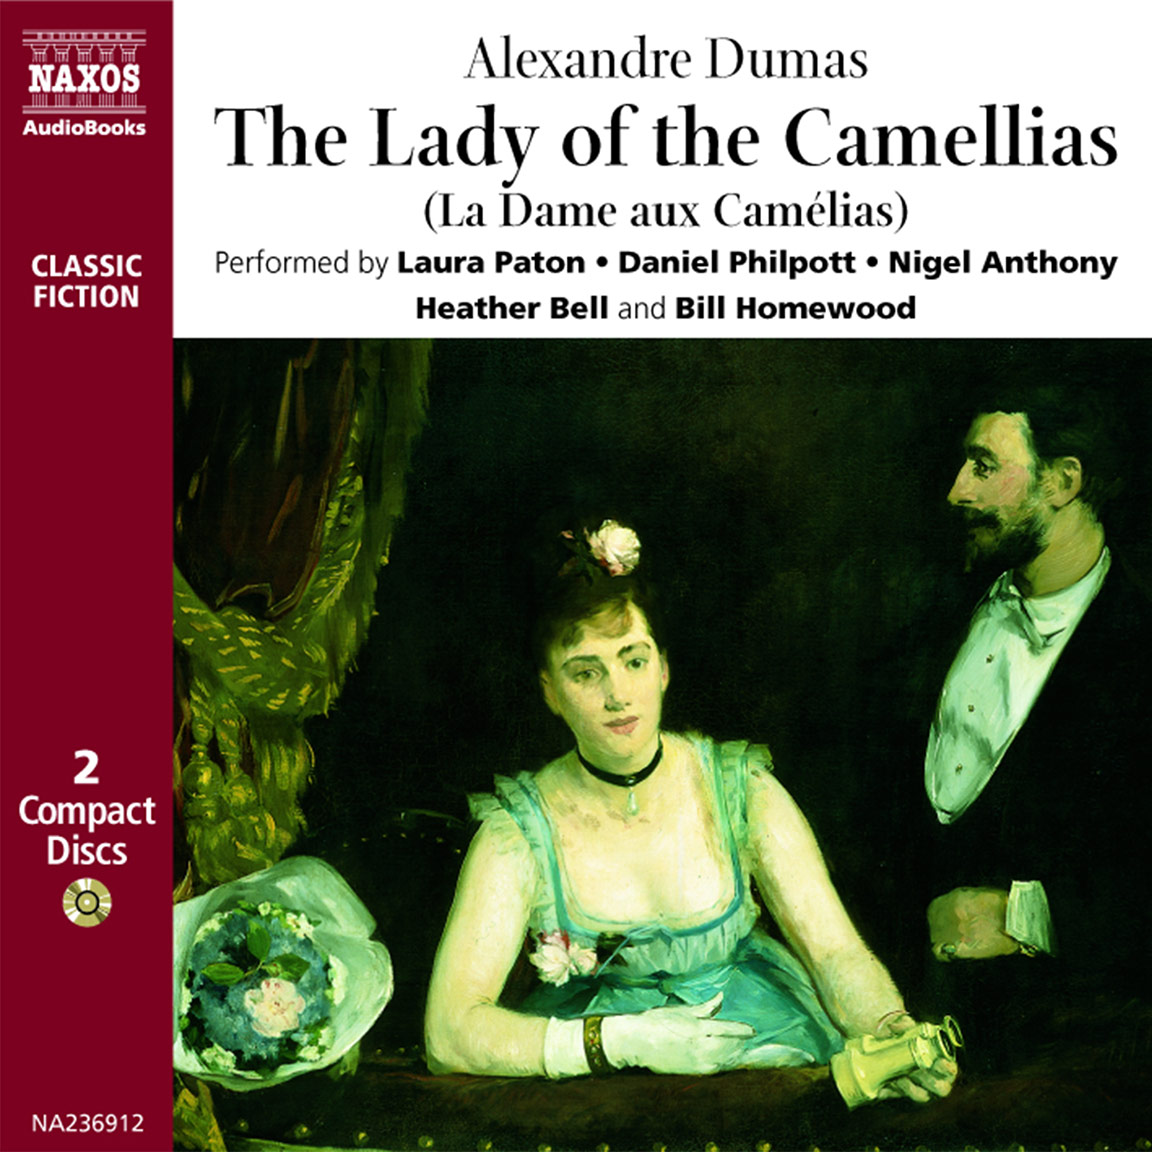 Lady of the Camellias